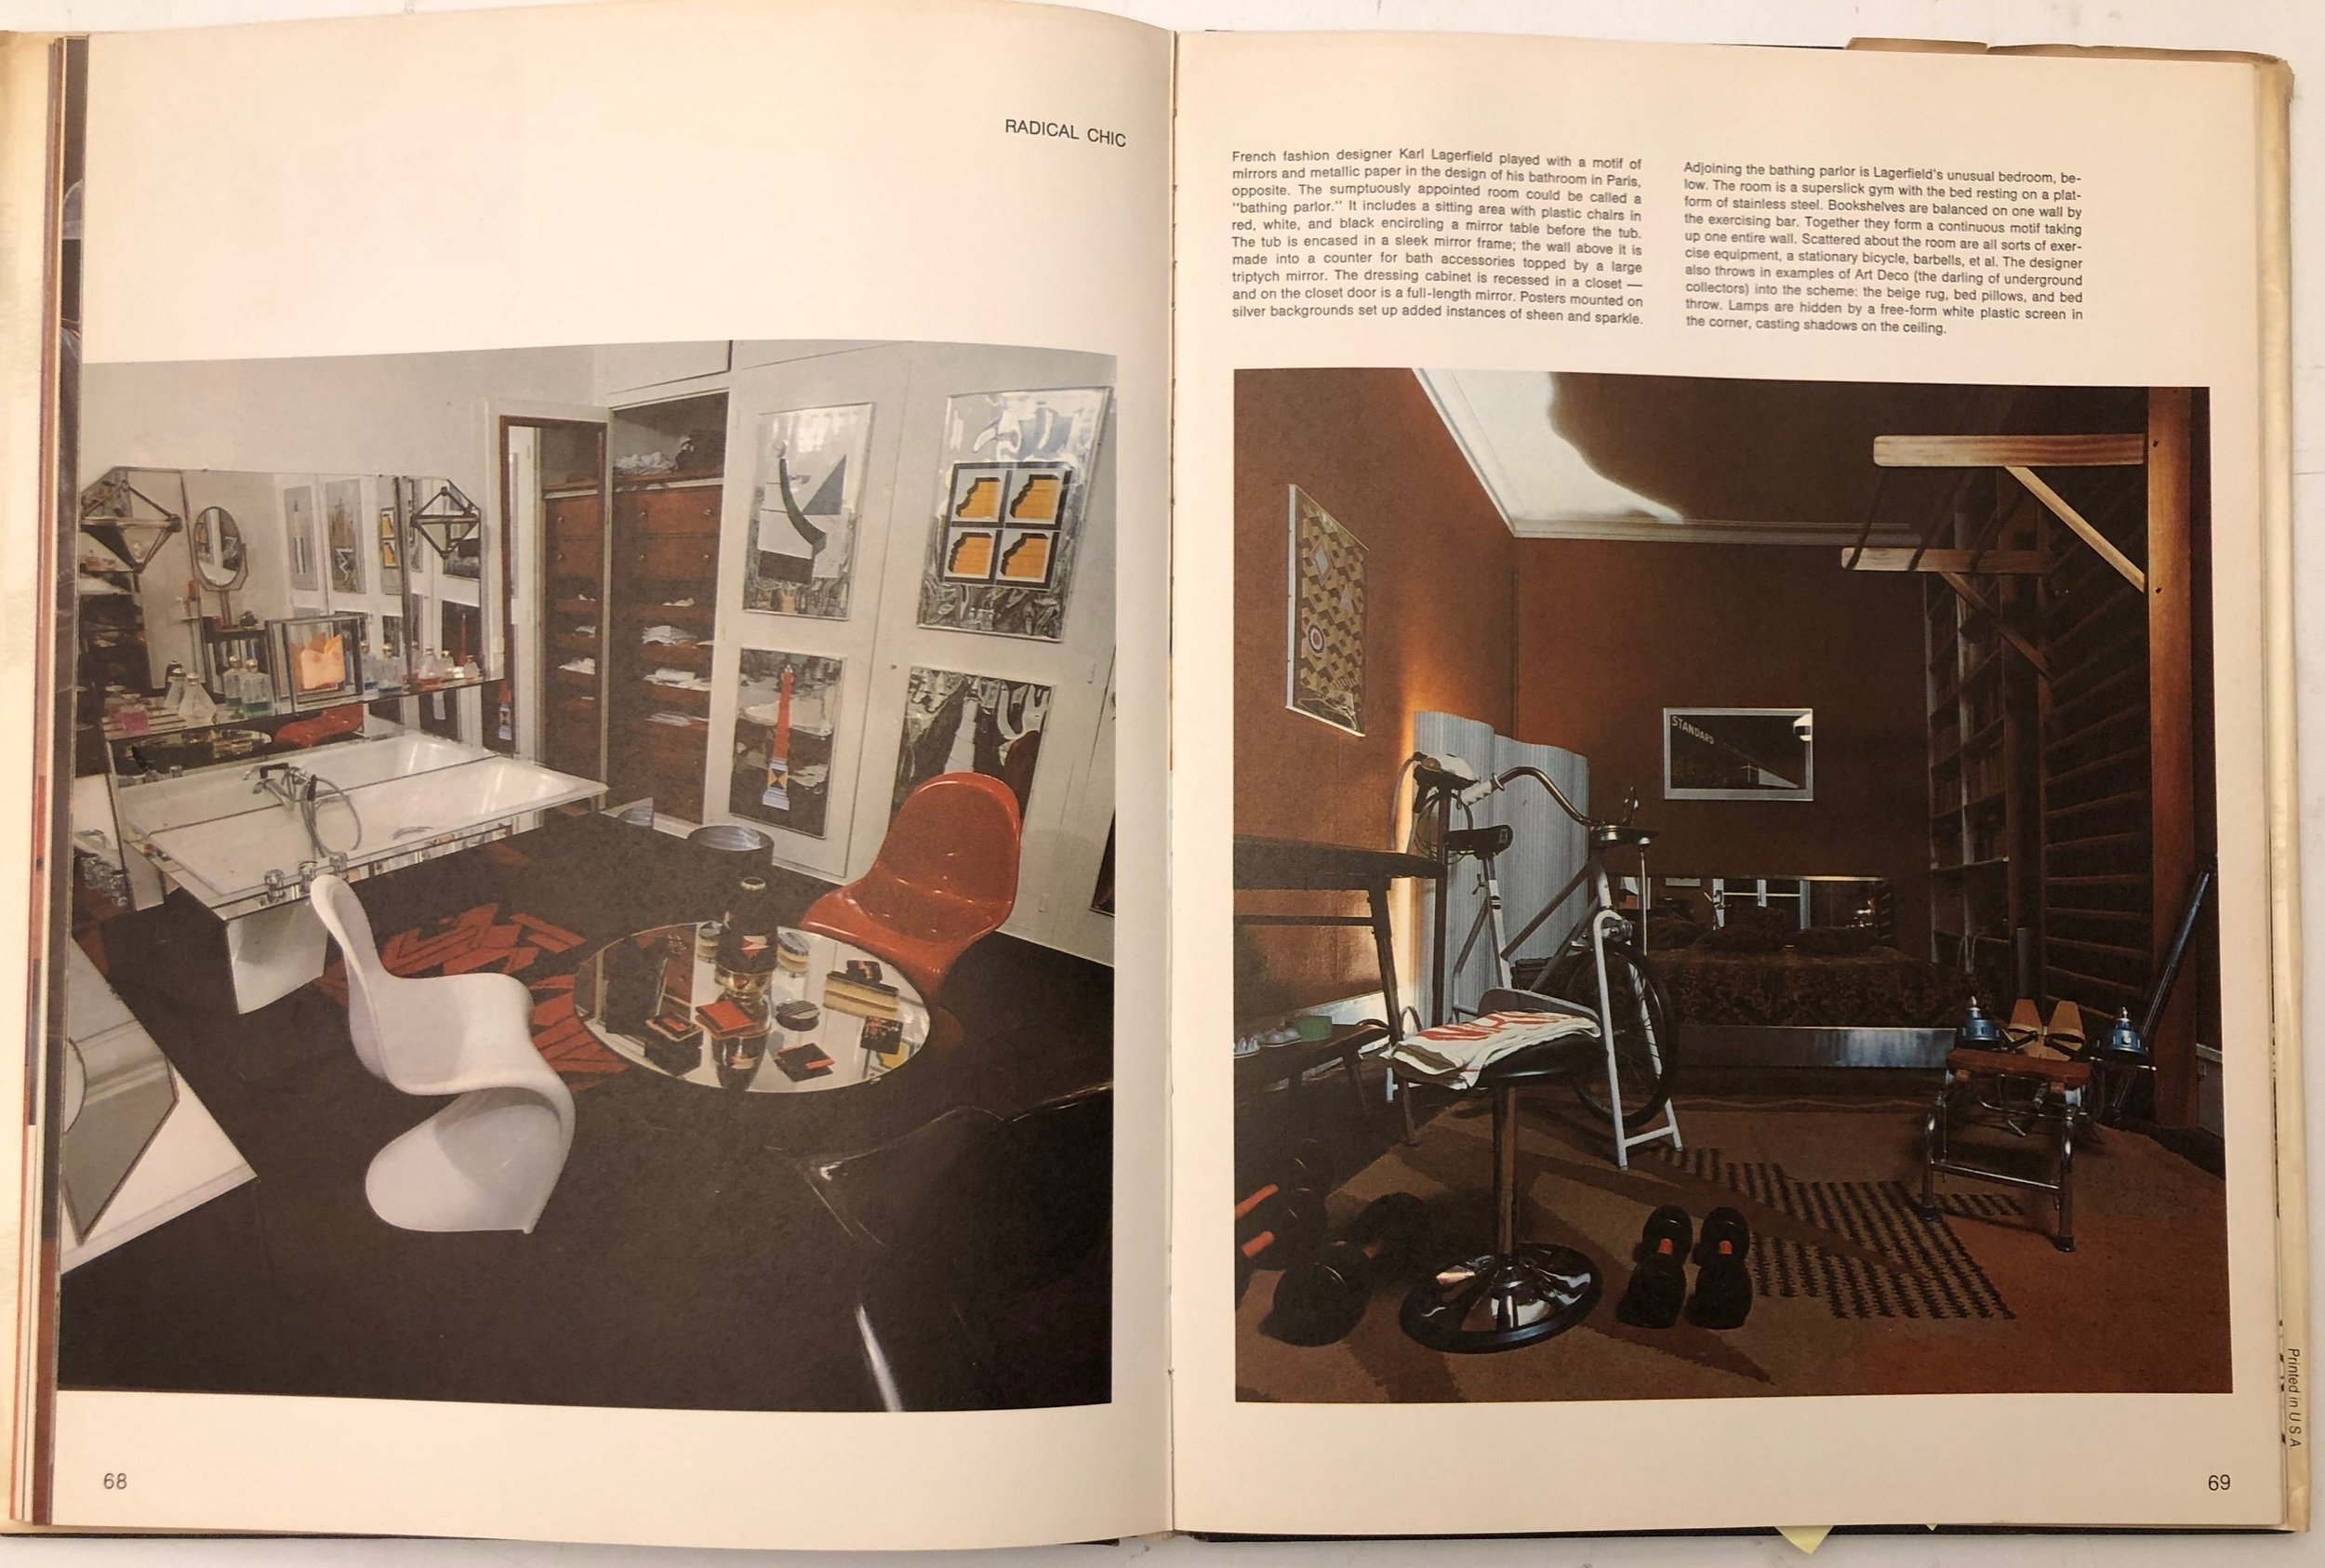 A spread from the book, showing Karl Lagerfeld's combination bath-sitting room, and gym-bedroom, for his Paris apartment.